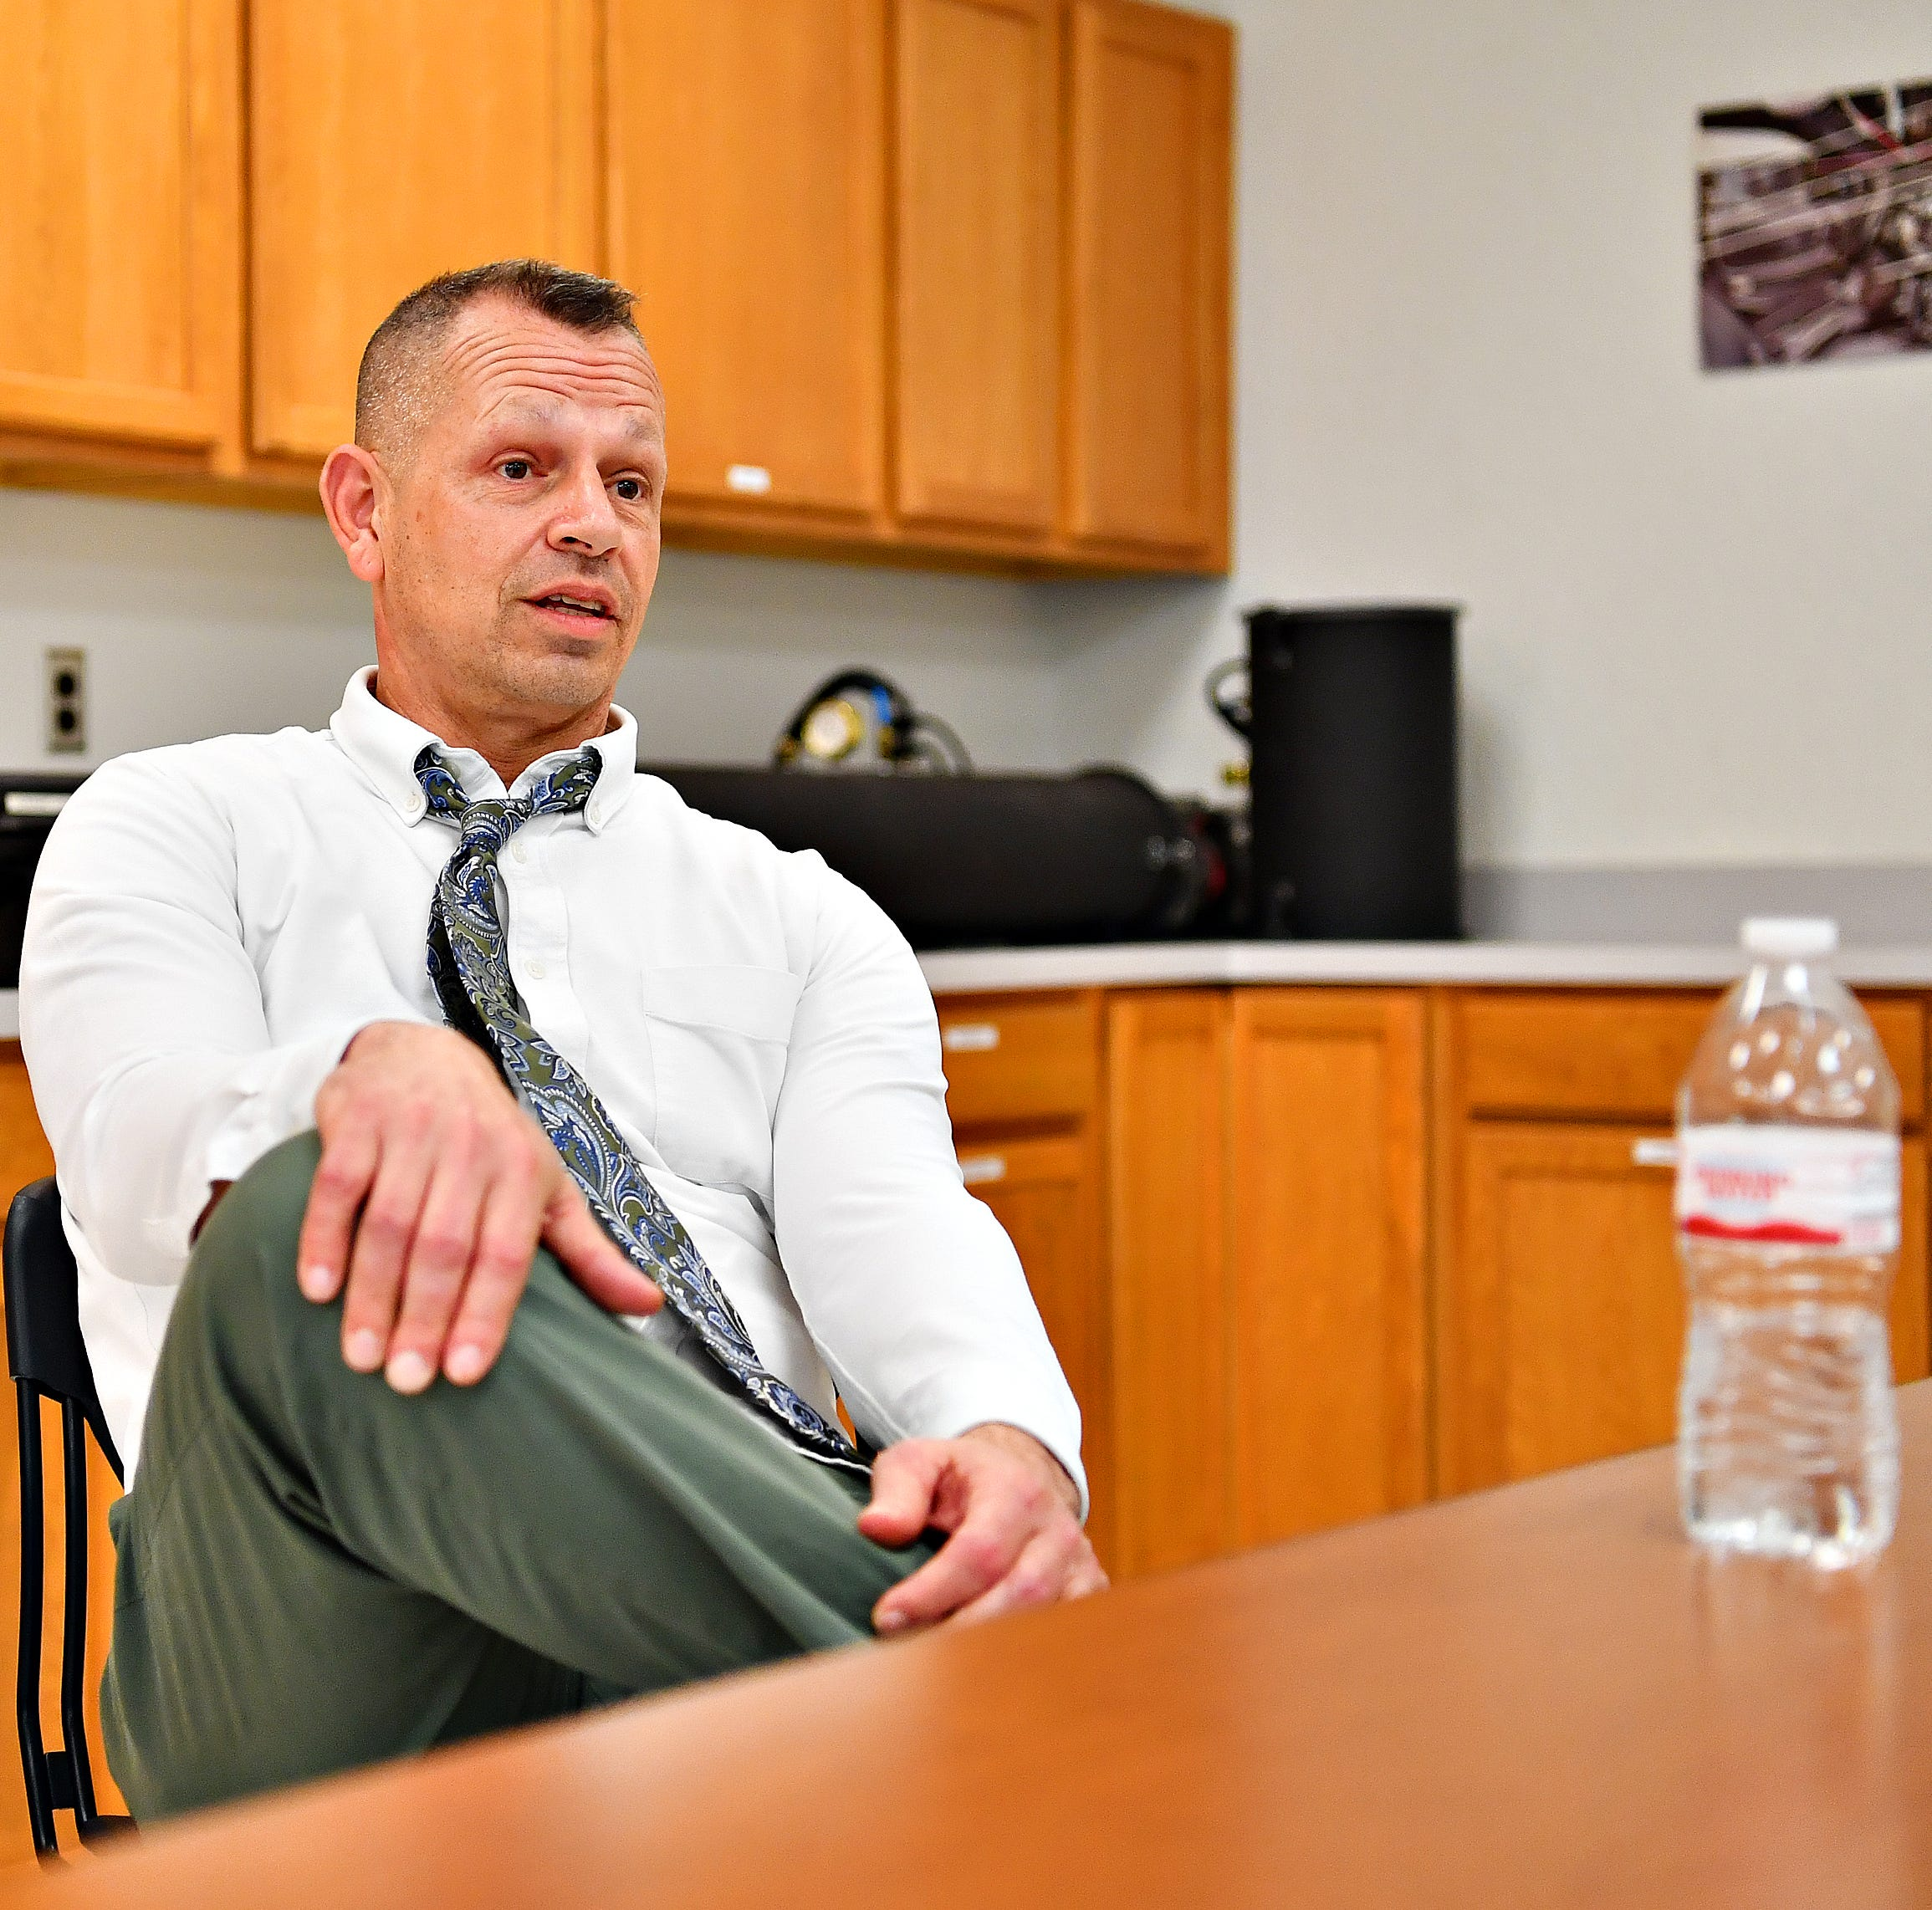 Assistant Chief County Detective Jeff Spence talks about the York County Law Enforcement Resource Center during a tour in York City, Thursday, Feb. 7, 2019. Dawn J. Sagert photo